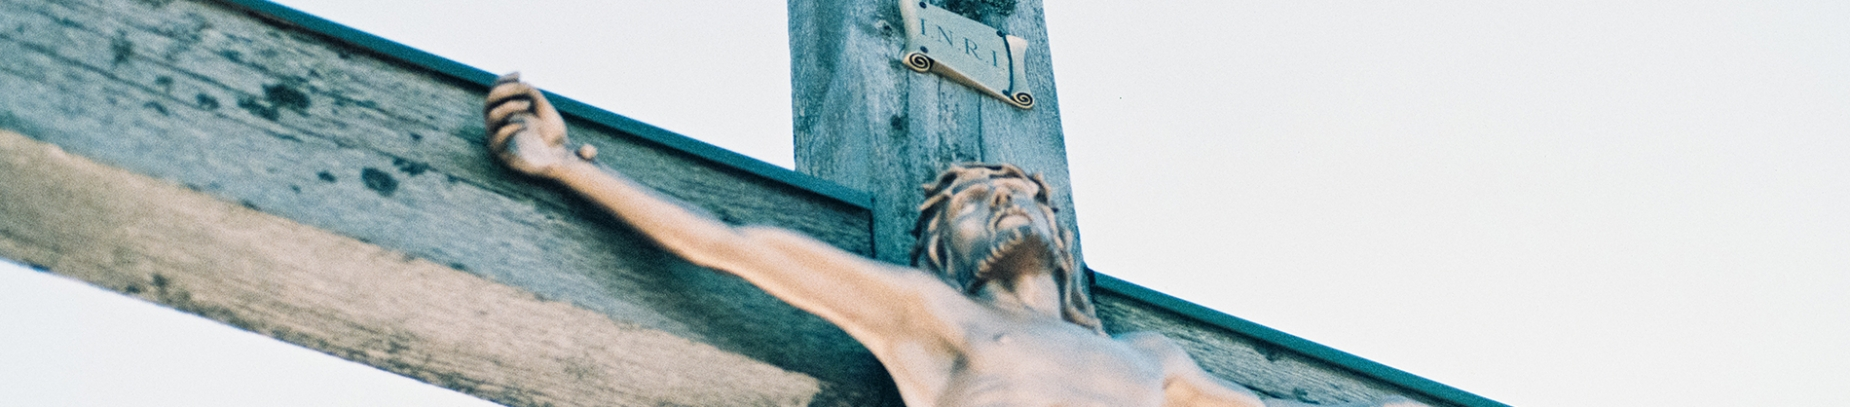 Statue of Jesus nailed to the cross